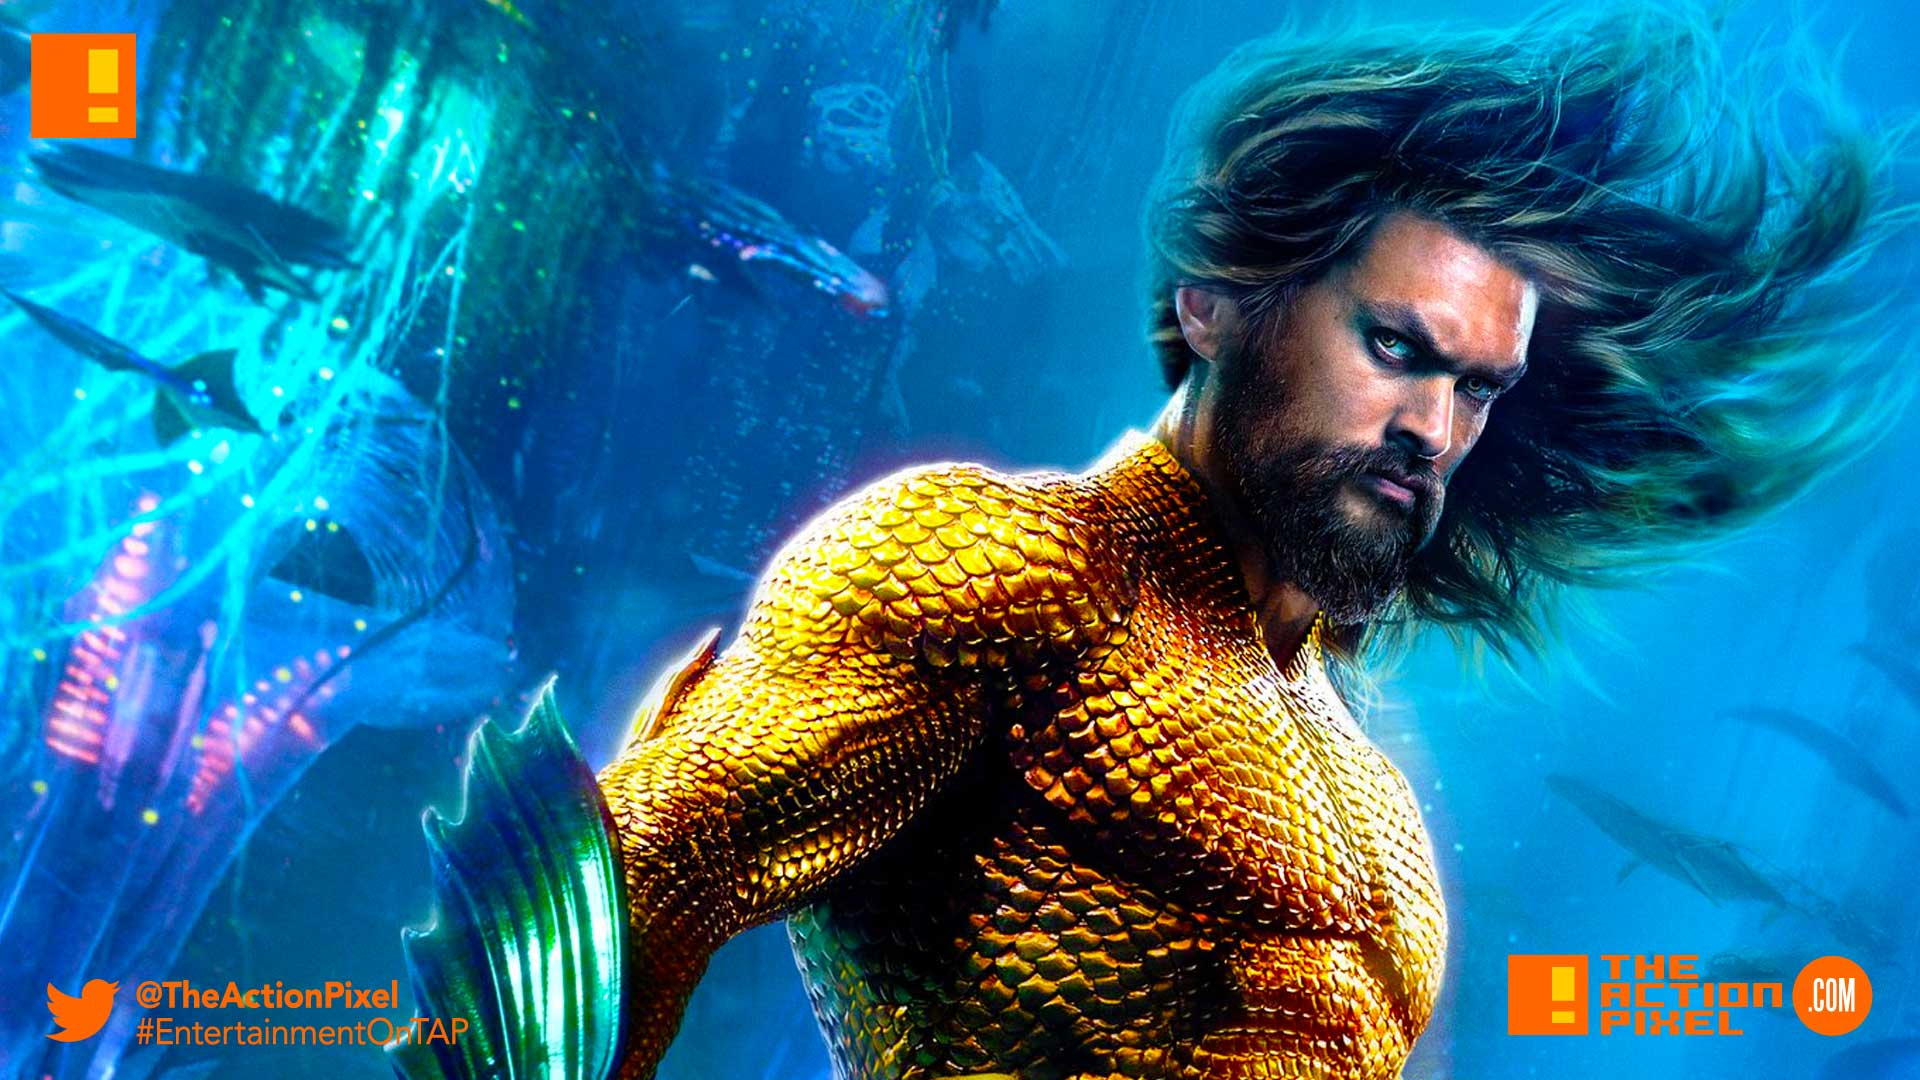 AQUAMAN, vulko, king orm, king nereus, black manta, queen atlanna, princess mera, arthur curry, dc comics, warner bros. pictures, the action pixel, character posters, poster, entertainment on tap,